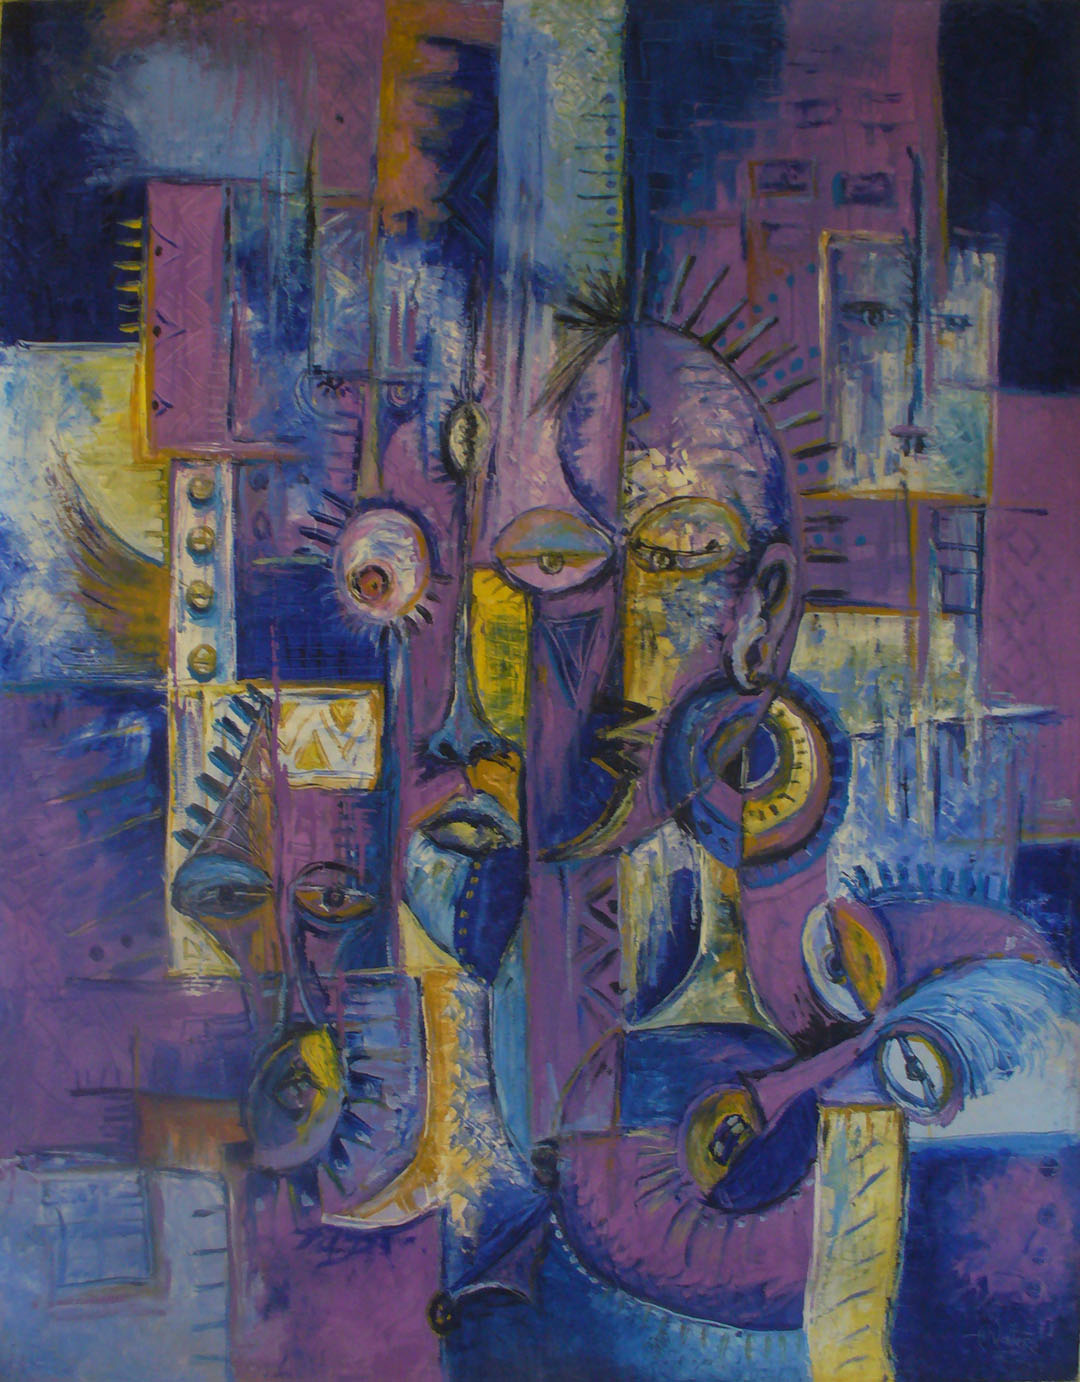 Here is a surreal violet and purple painting by Angu Walters.